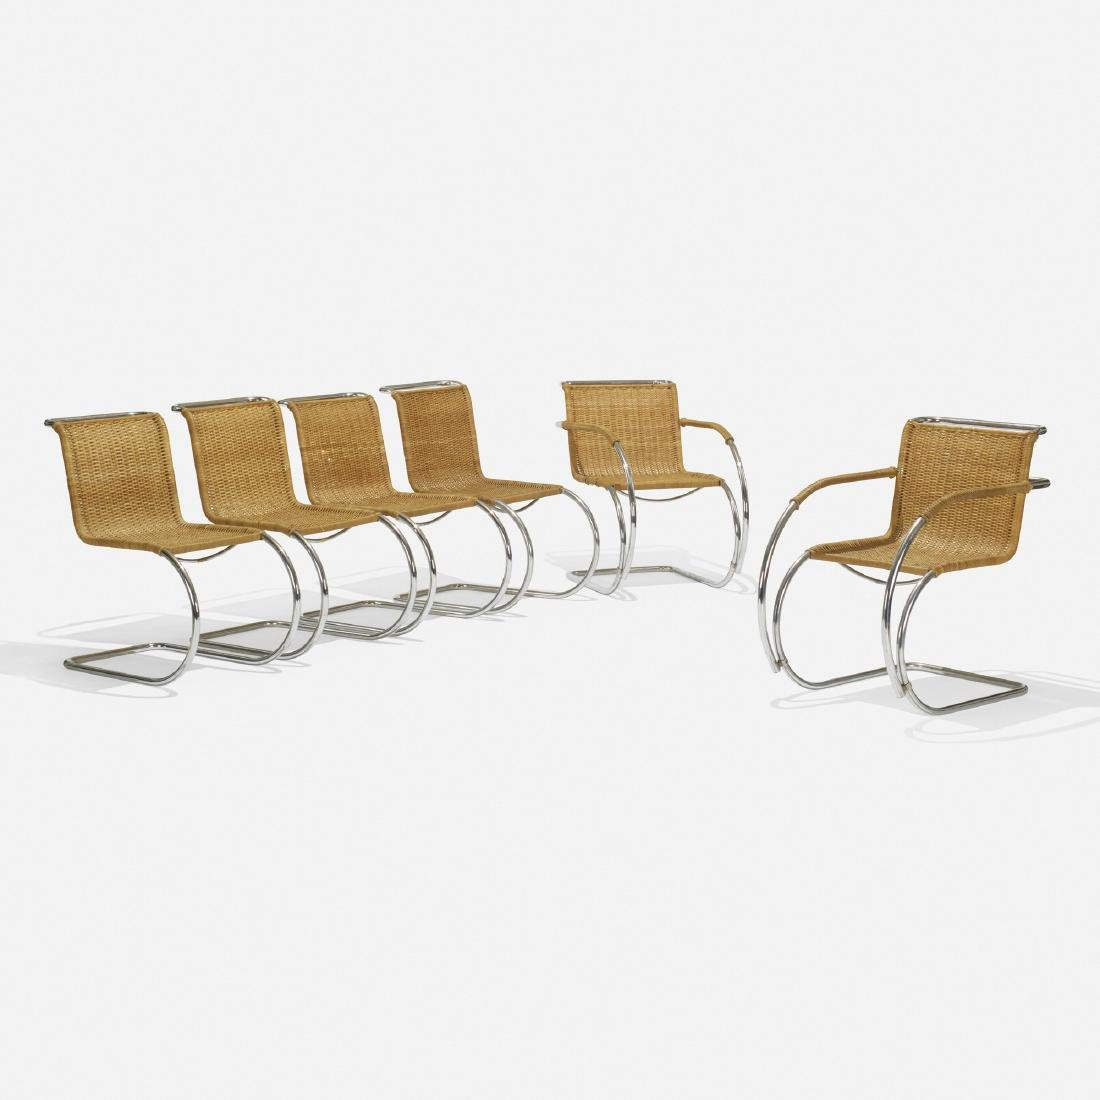 Ludwig Mies van der Rohe, MR20 and MR10 chairs